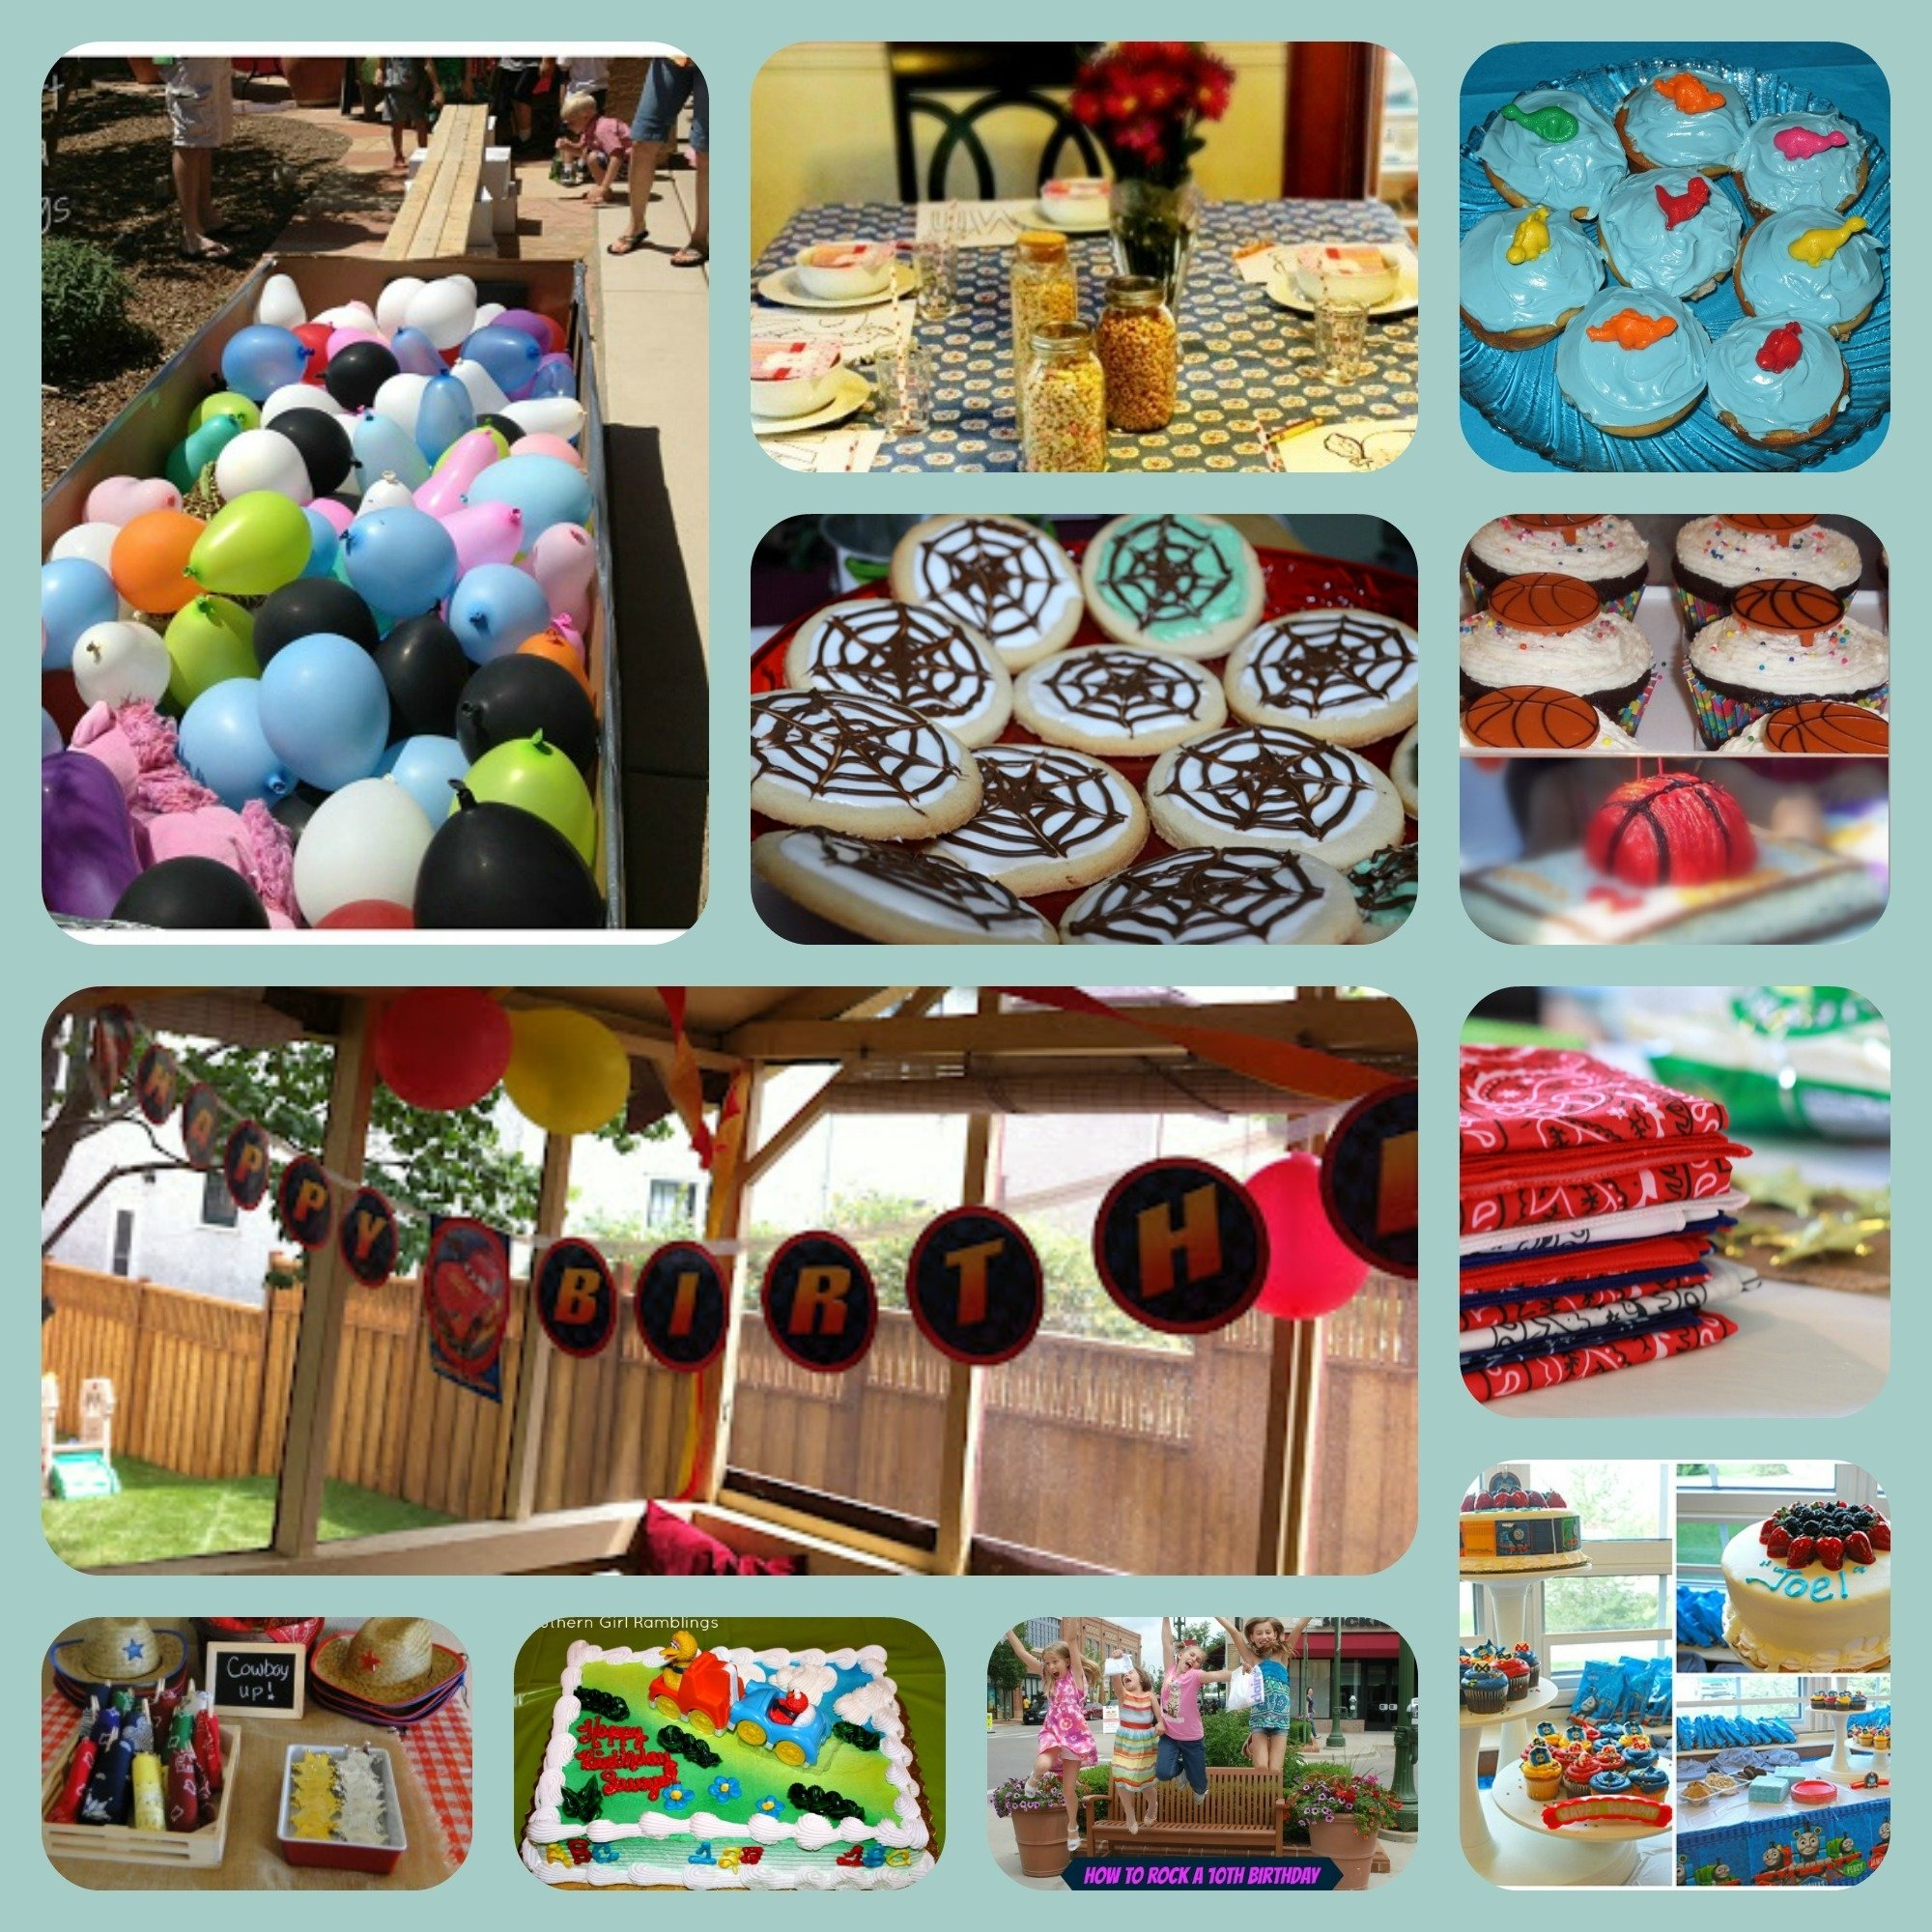 10 Awesome Ten Year Old Birthday Party Ideas 40 birthday party themes ideas tutorials and printables 2 2020